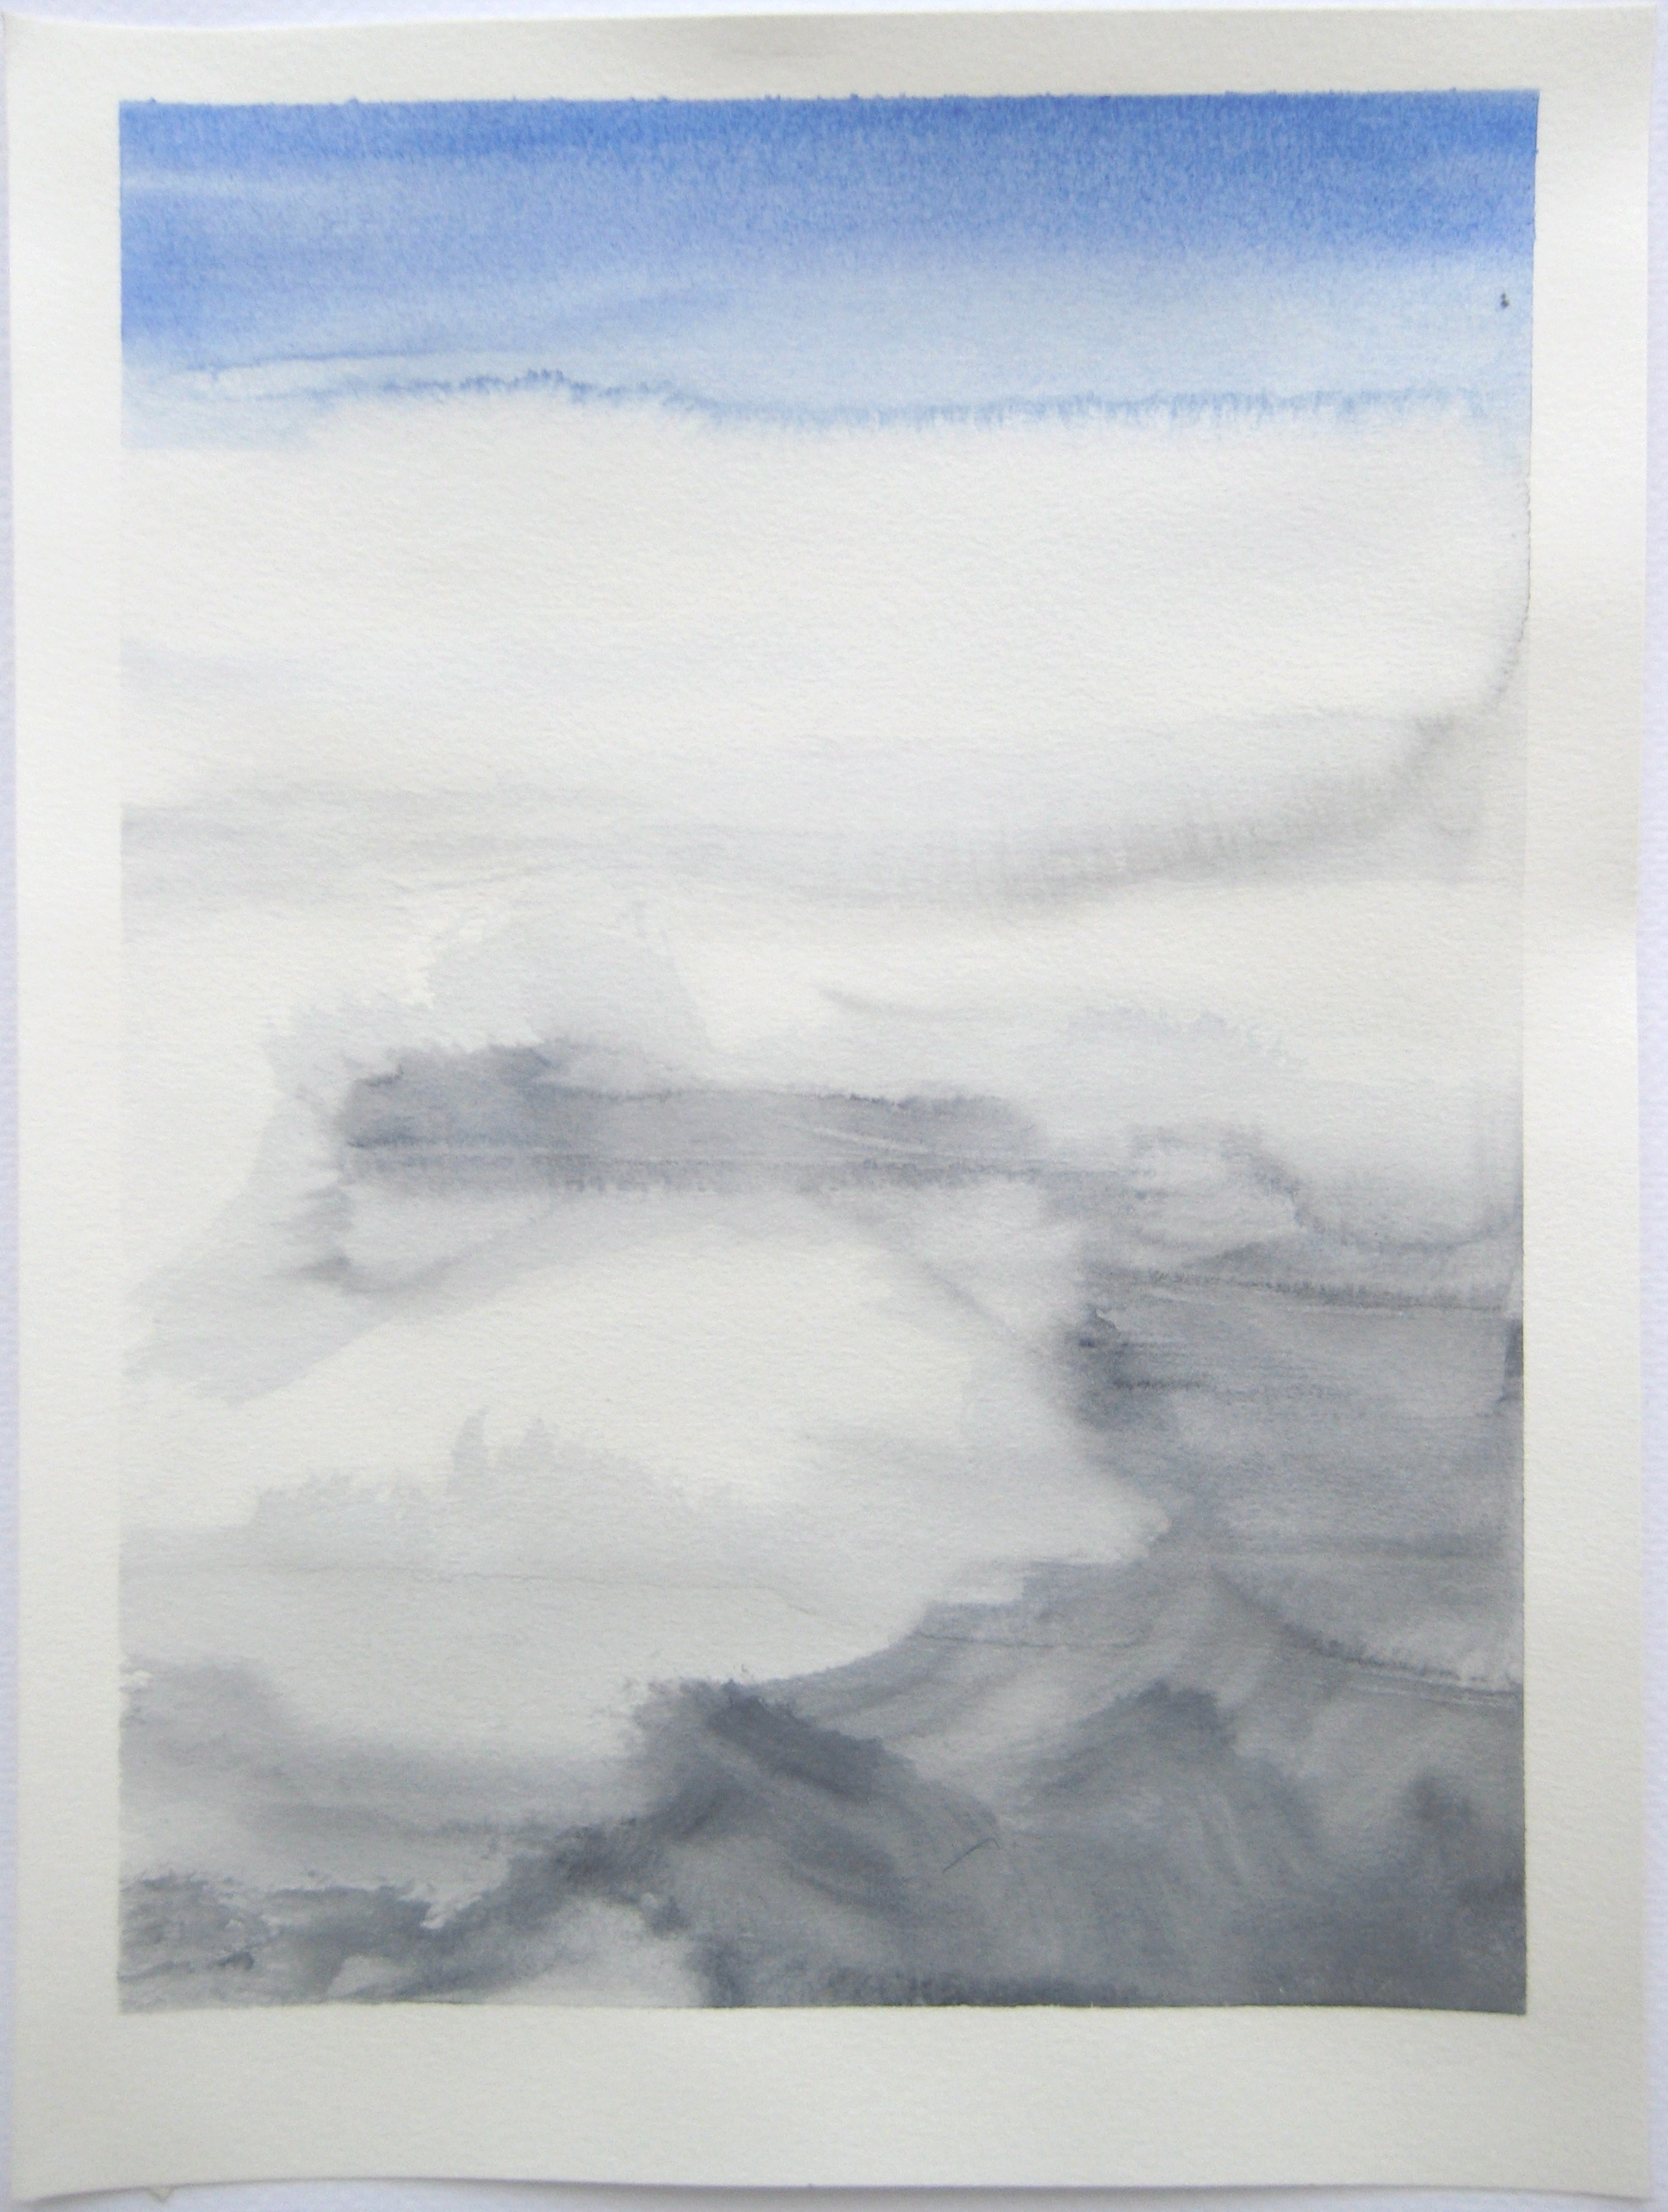 """Sky #1.3/2007, 2007, watercolor on paper paper: 12 6/8""""x9 1/2""""; image: 11 1/4""""x8 1/4"""""""